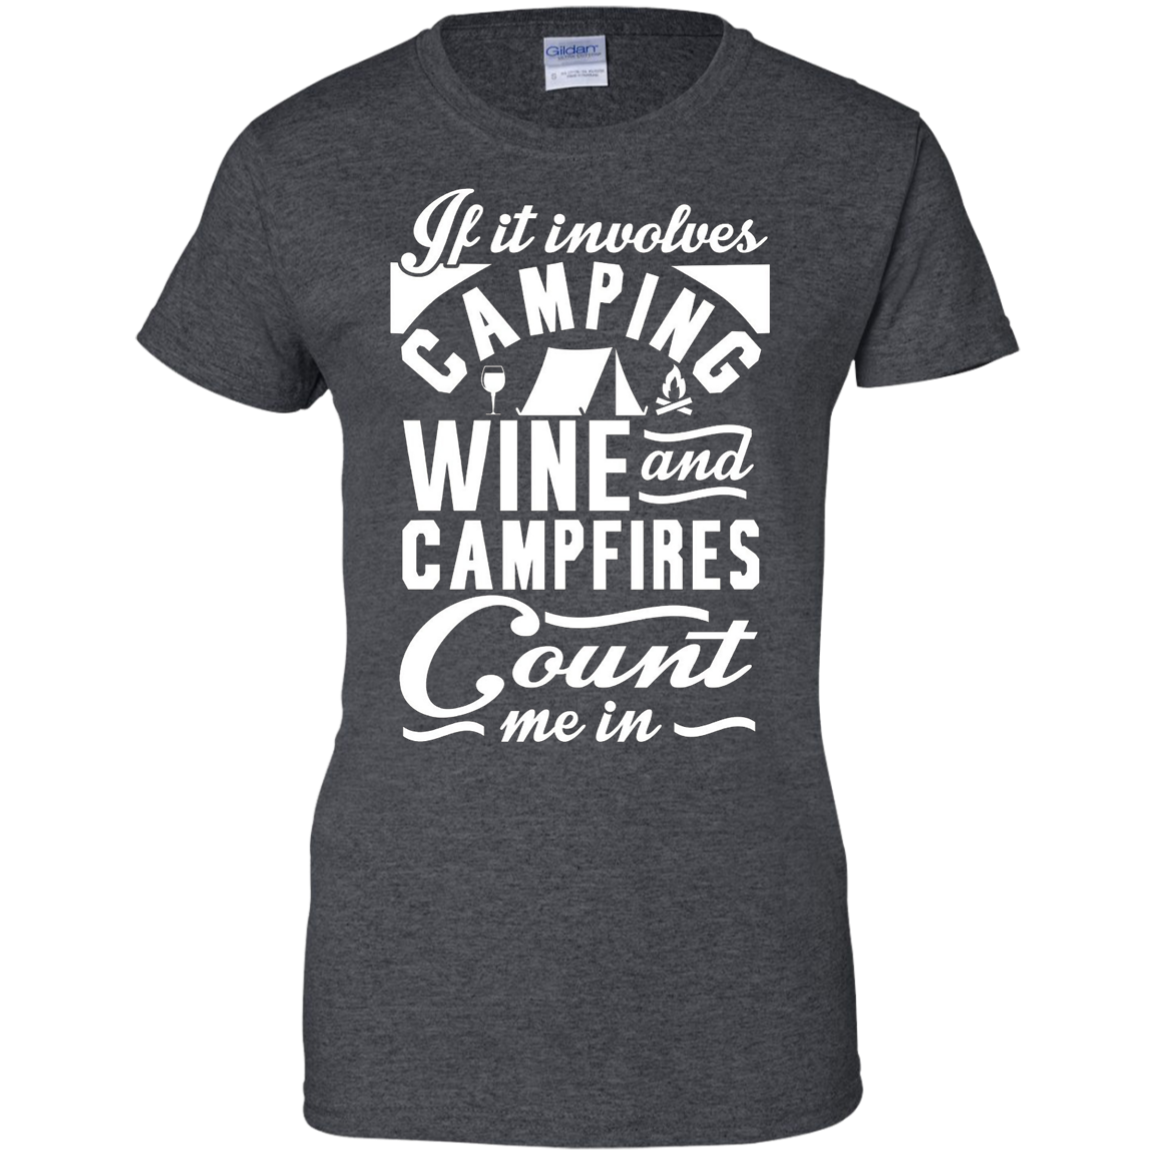 Camping Wine and Campfires Women Men T shirts